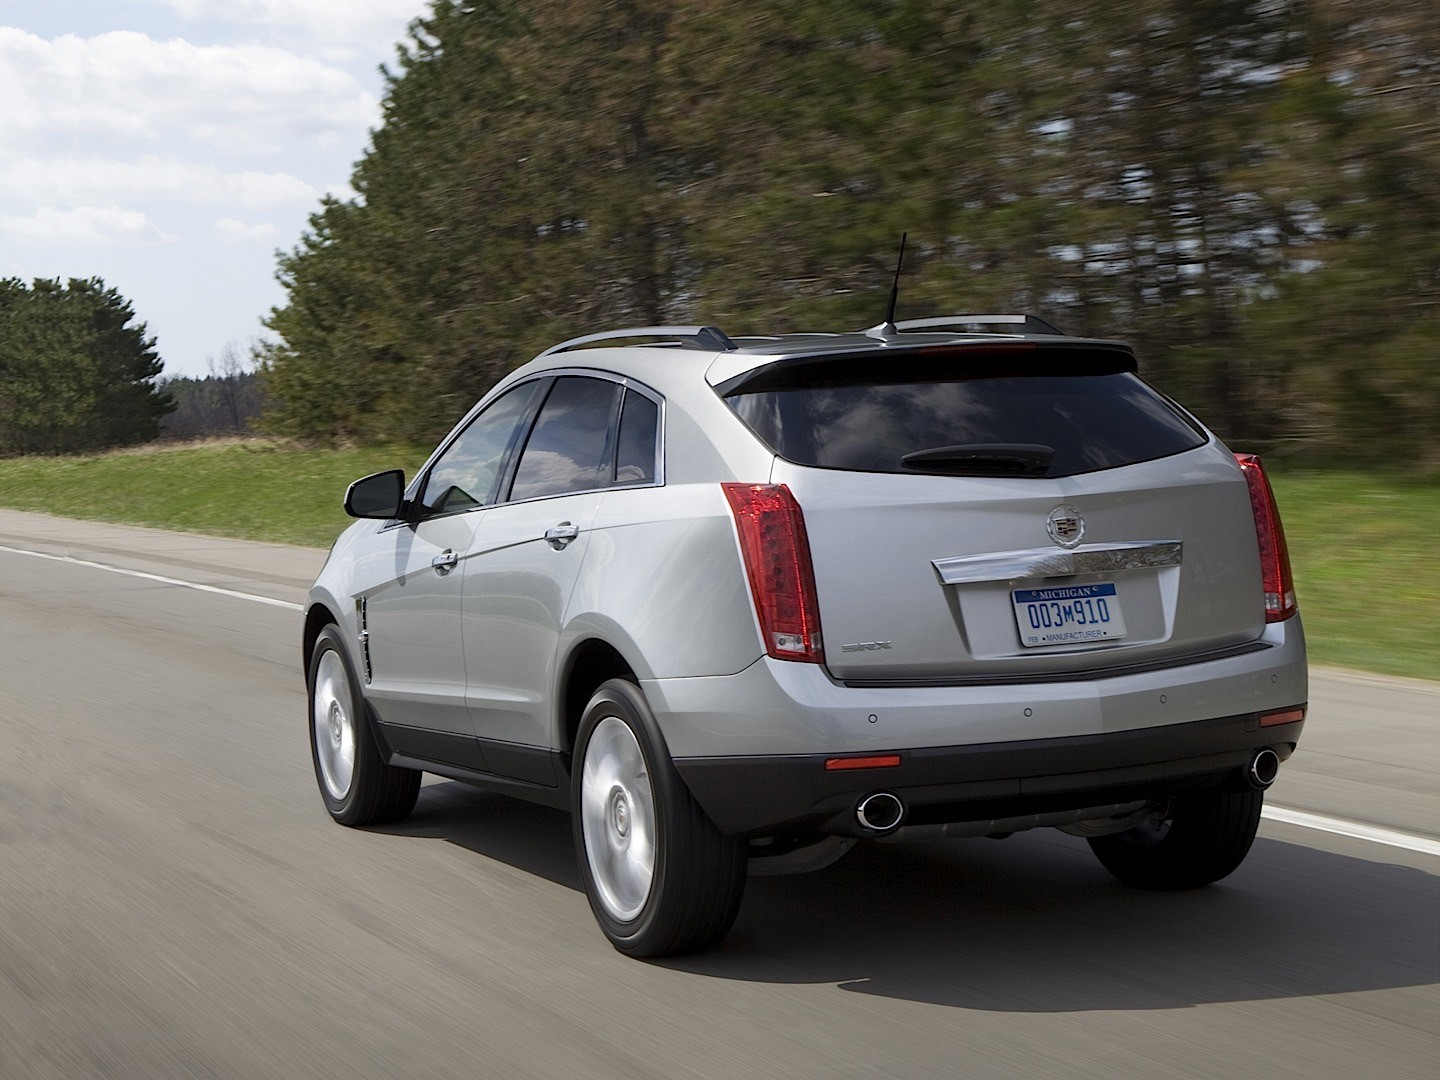 cadillac srx specs photos 2009 2010 2011 2012 2013 2014 2015 2016 autoevolution. Black Bedroom Furniture Sets. Home Design Ideas